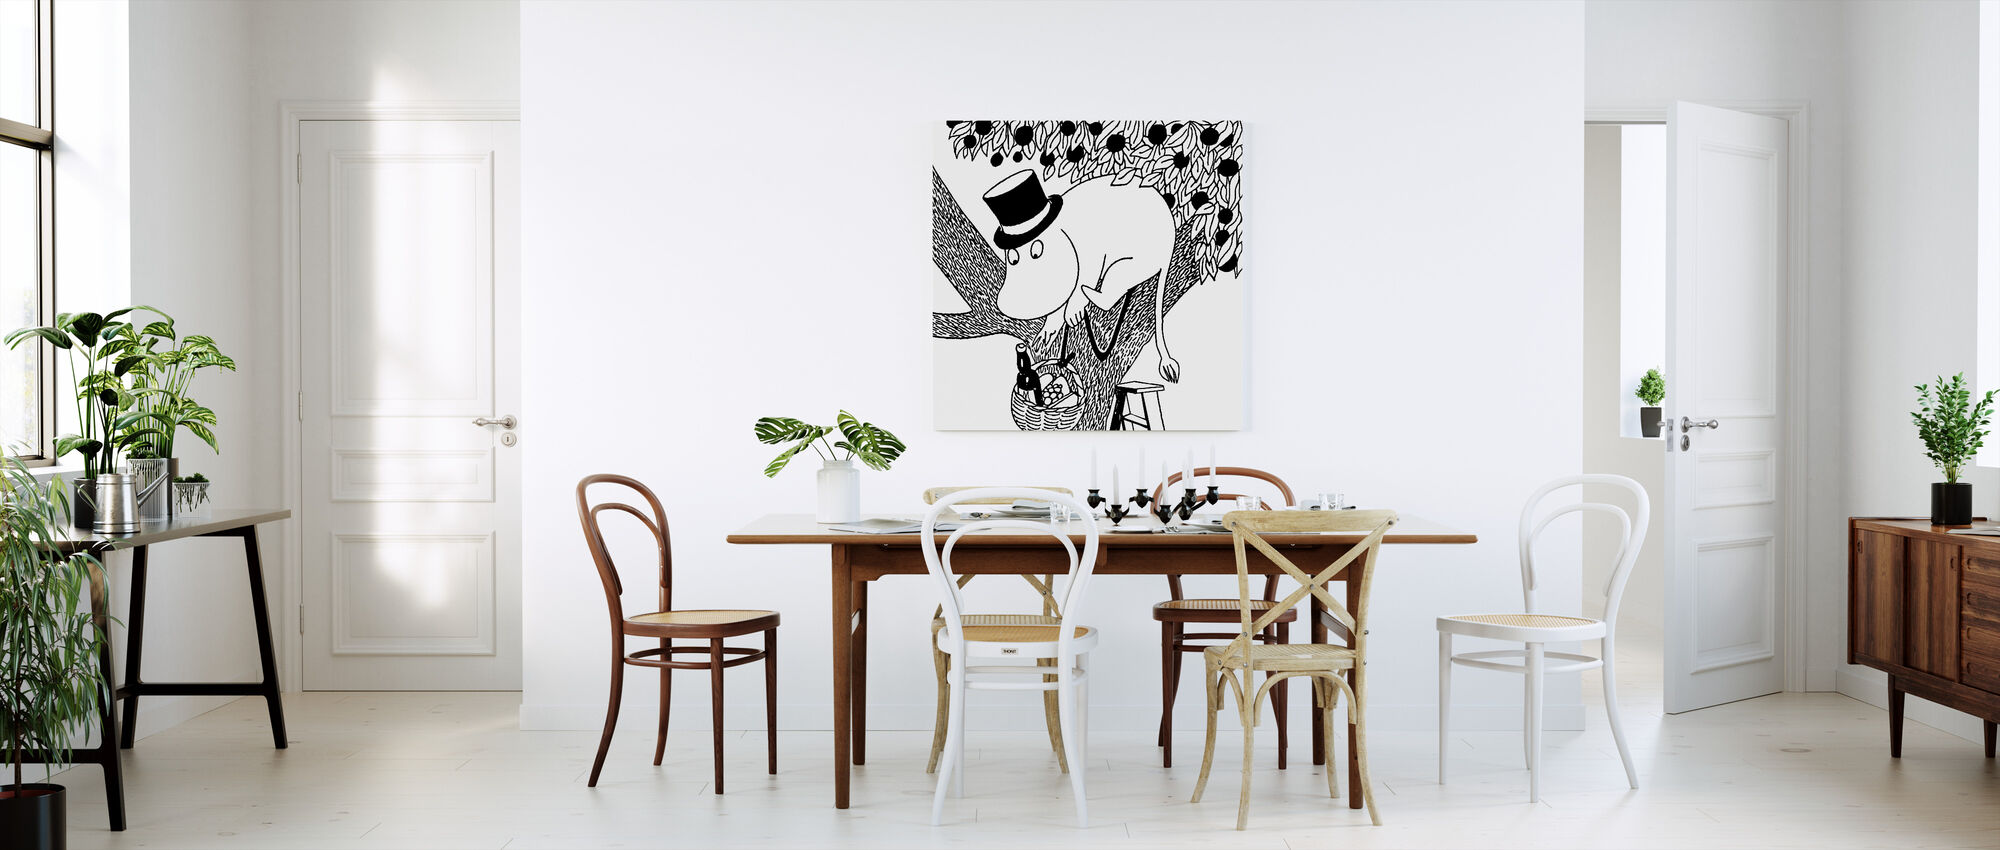 Moomin - Moominpappa the Epicurean - Canvas print - Kitchen